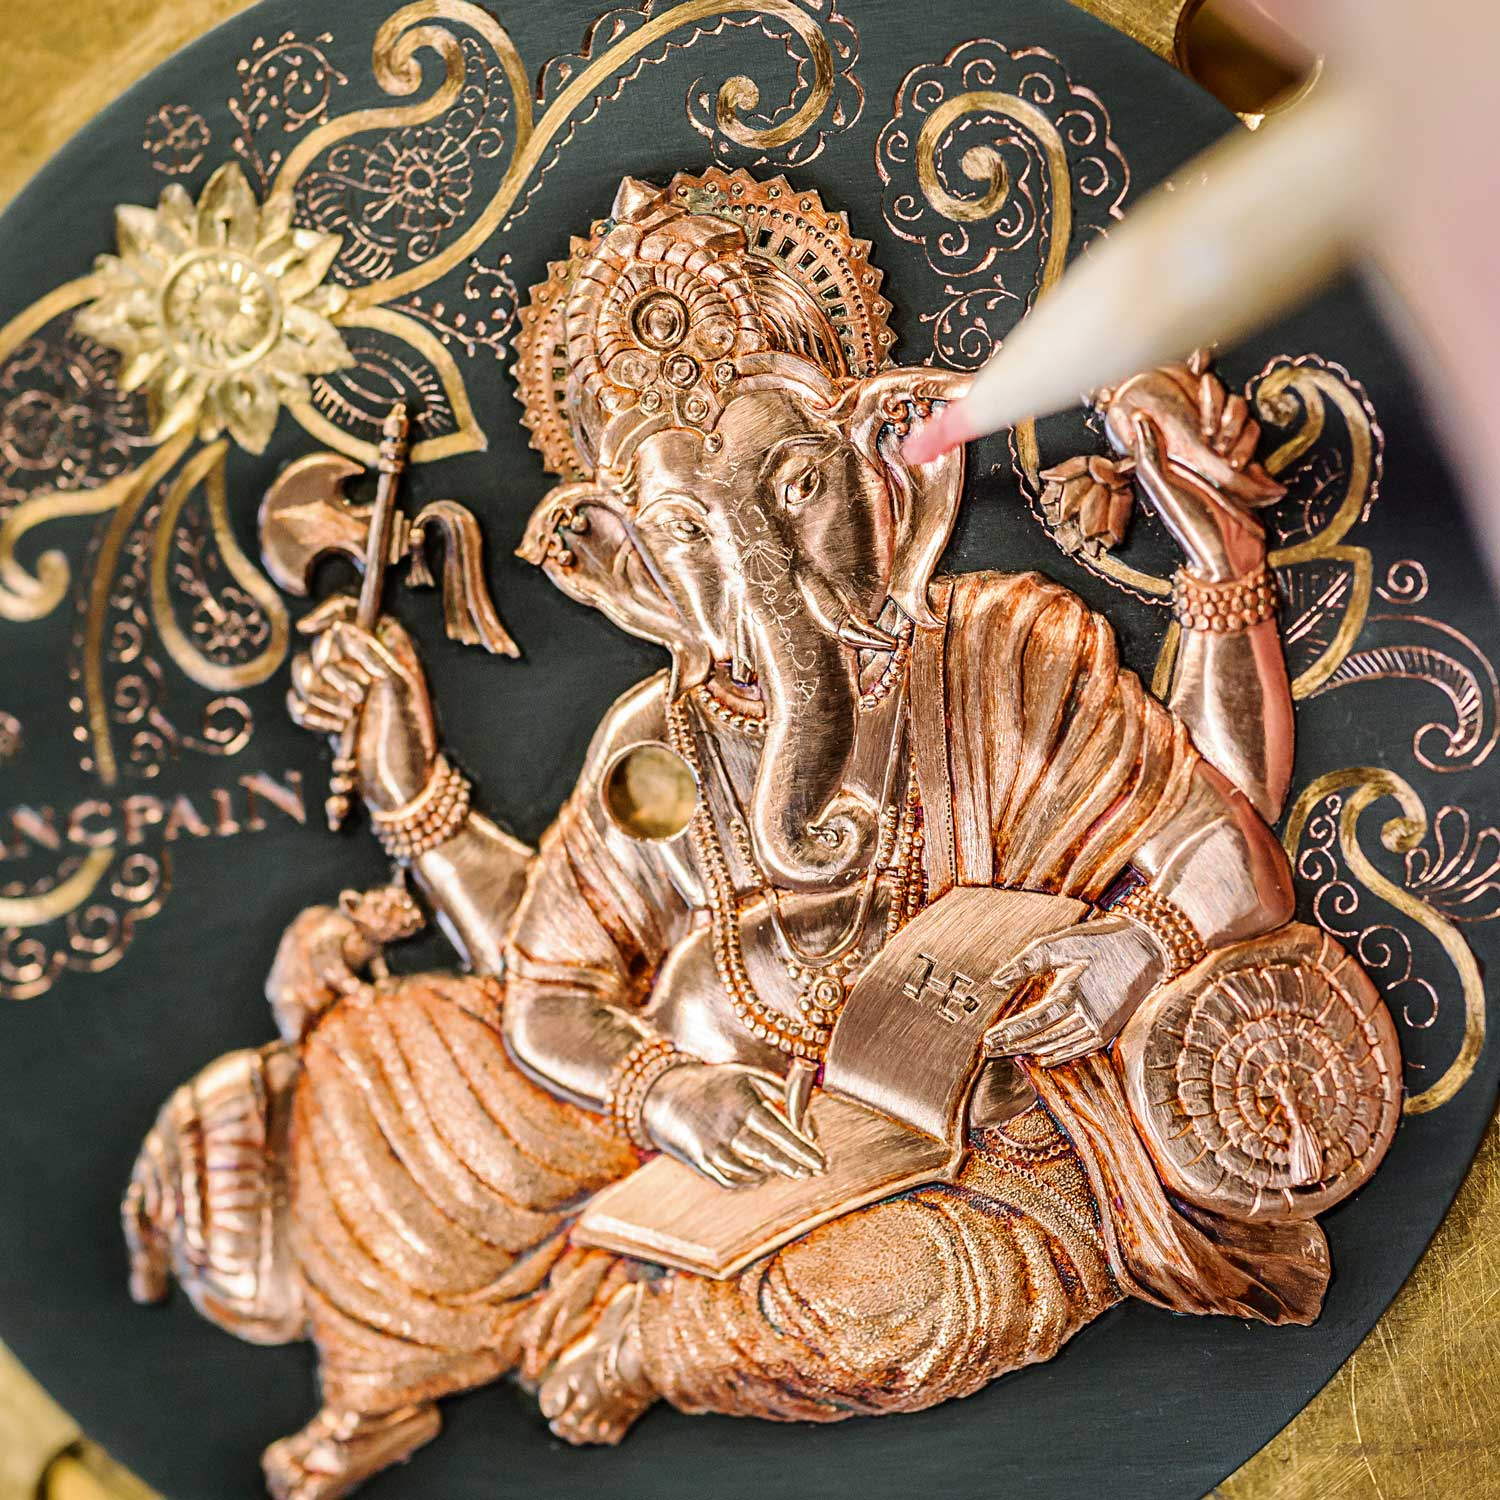 The creation of the award-winning Villeret Shakudo Ganesh begins with drawings of the Hindu god, before engraving the divinity and decorative motifs on the dial.